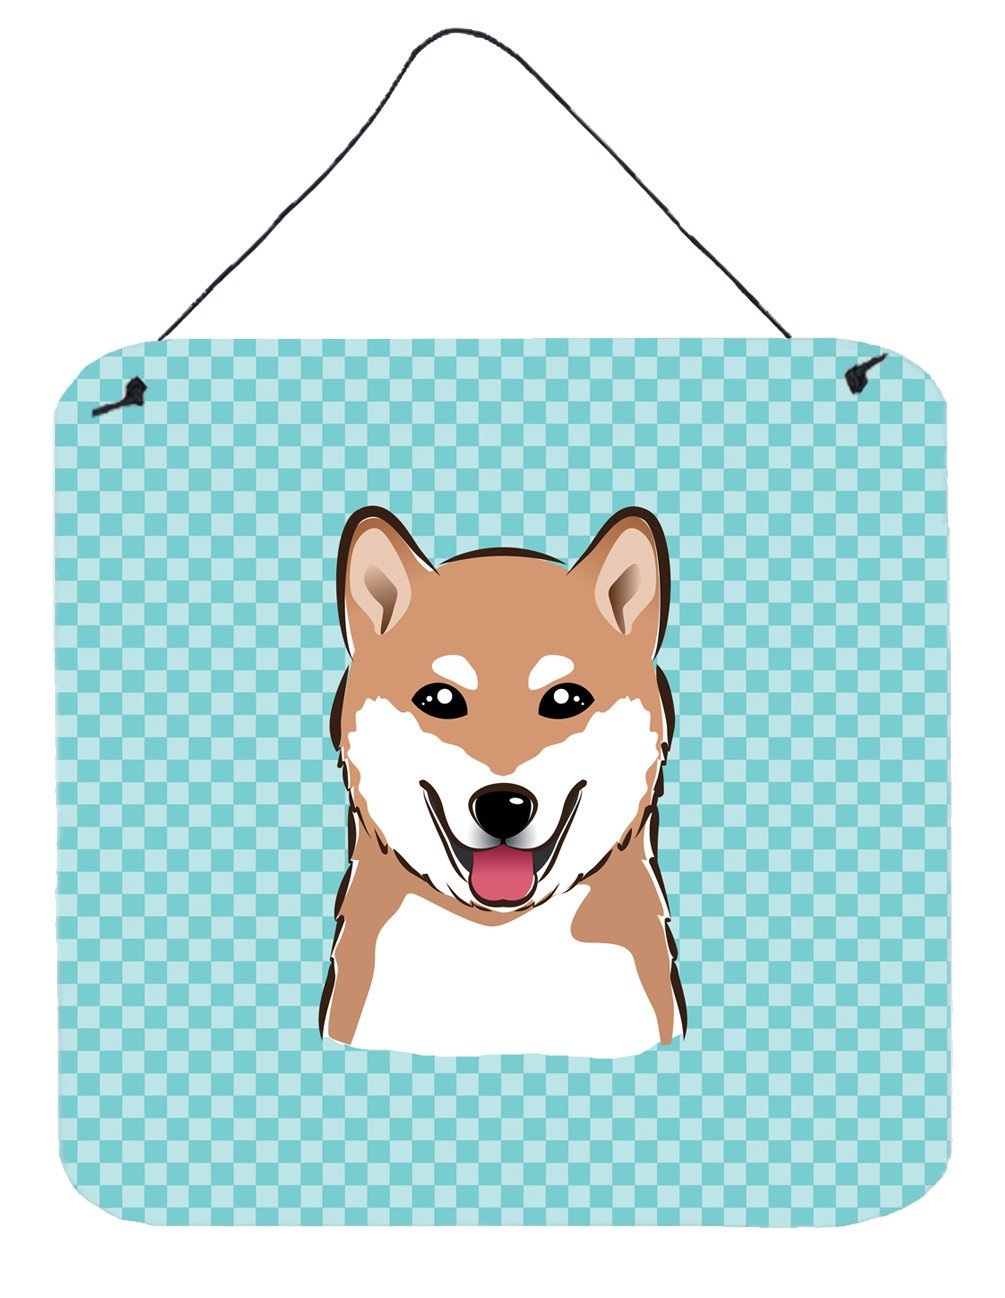 Checkerboard Blue Shiba Inu Wall or Door Hanging Prints BB1163DS66 by Caroline's Treasures